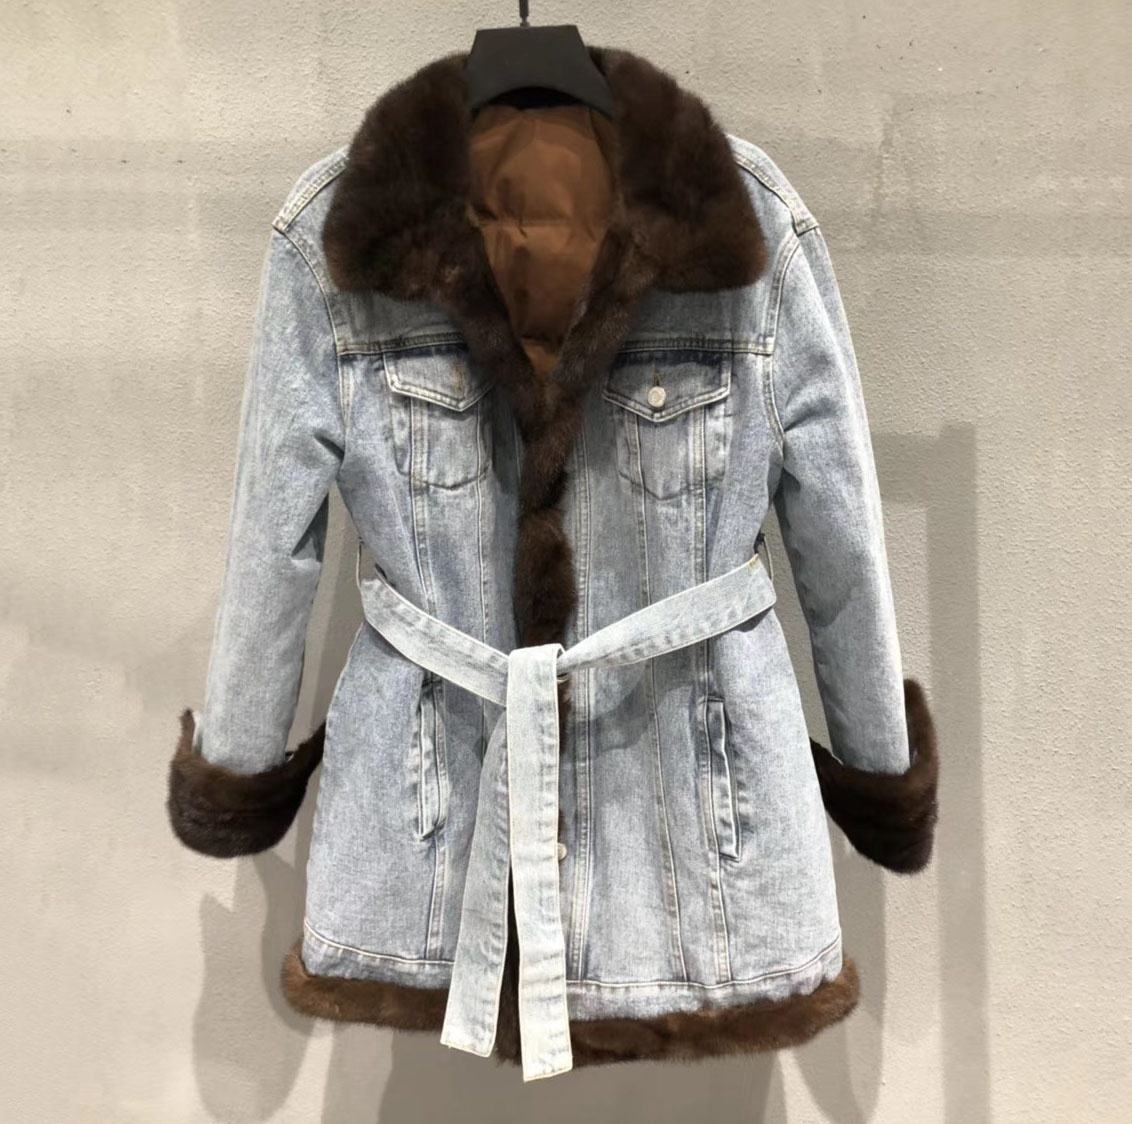 women's jackets 2020 winter canada parka natural mink fur trimming 90% duck down lining denim jacket ladies long coats